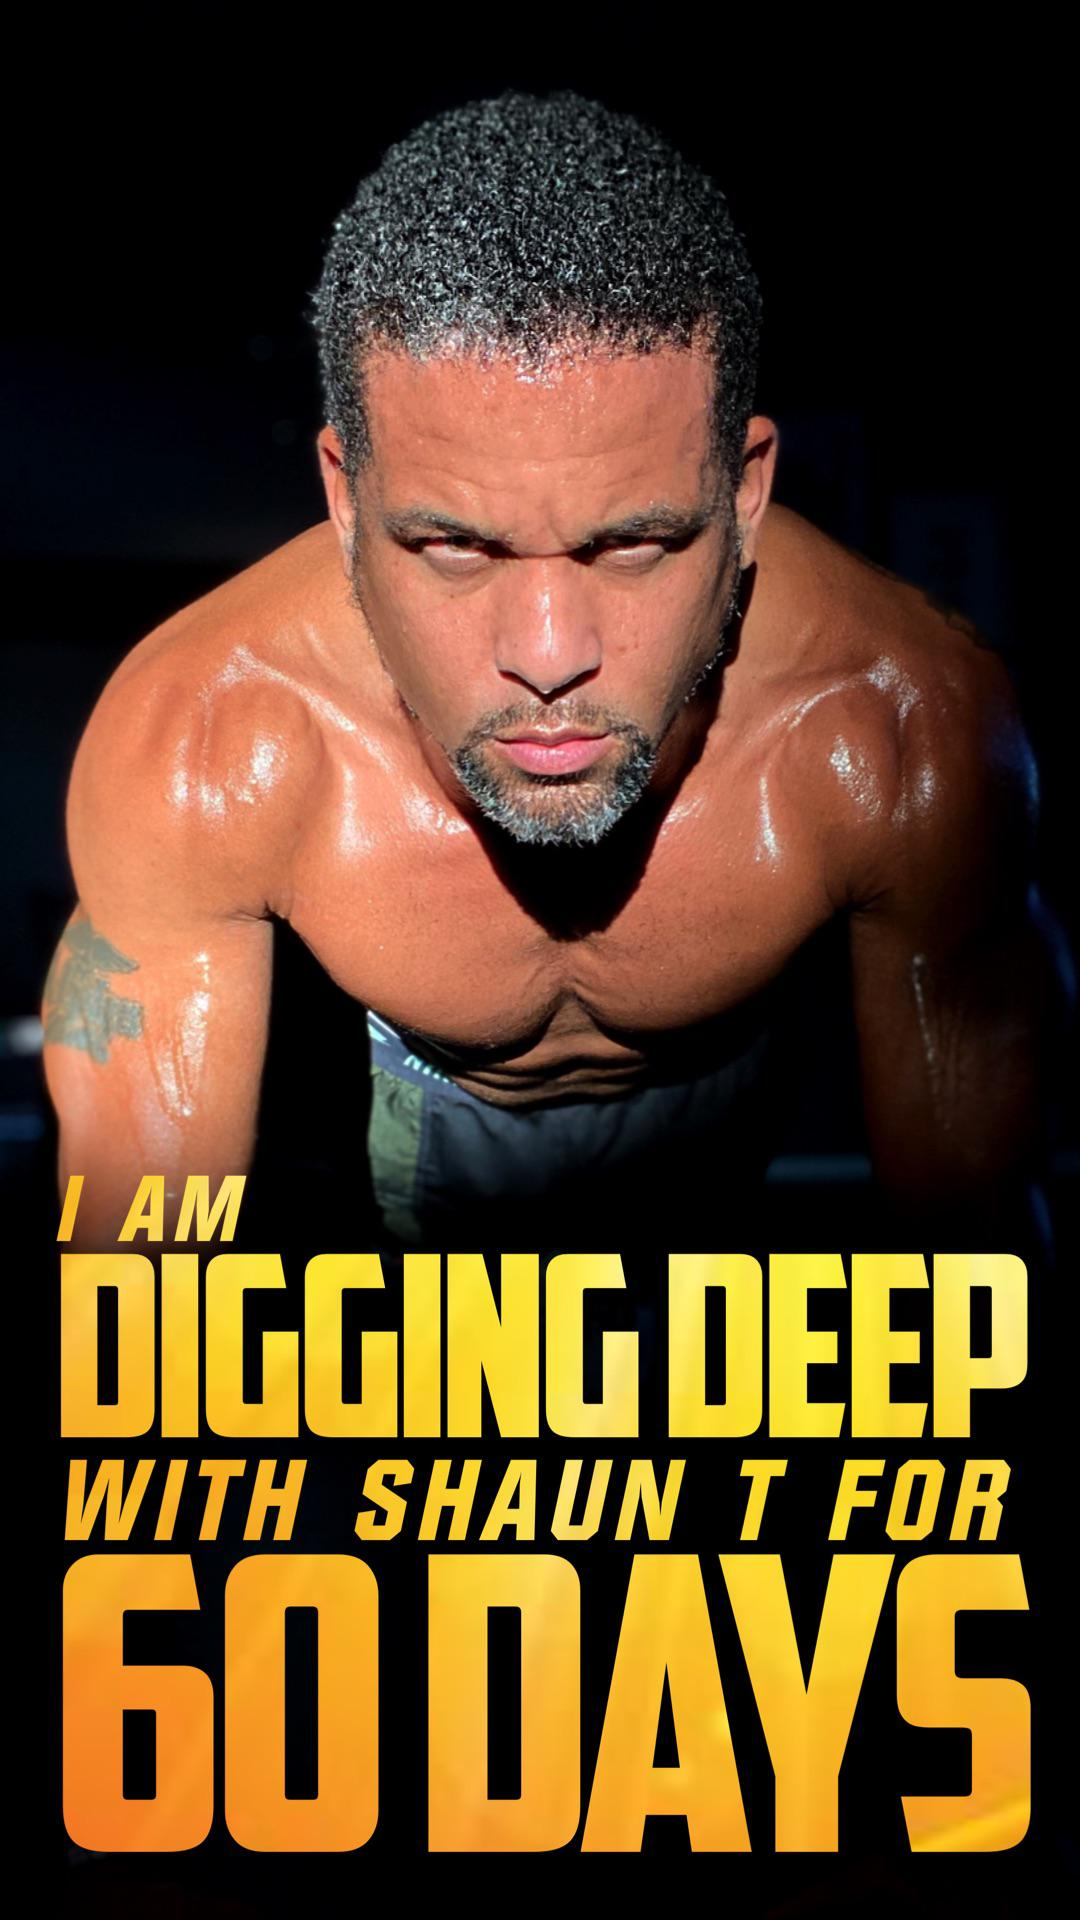 Who Else Is Digging Deeper With Shaun T For The Next 60 Days regarding Shaun T Hybrid Calendar